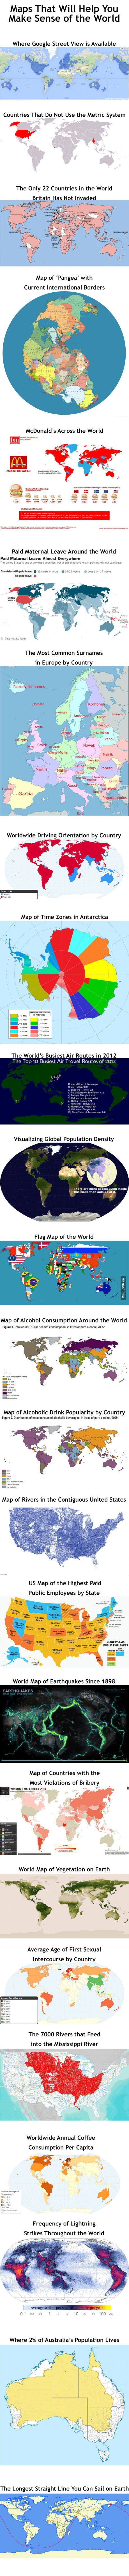 Maps That Will Help You Make Sense Of The World / 9G ||| I don't know what to do with this information.